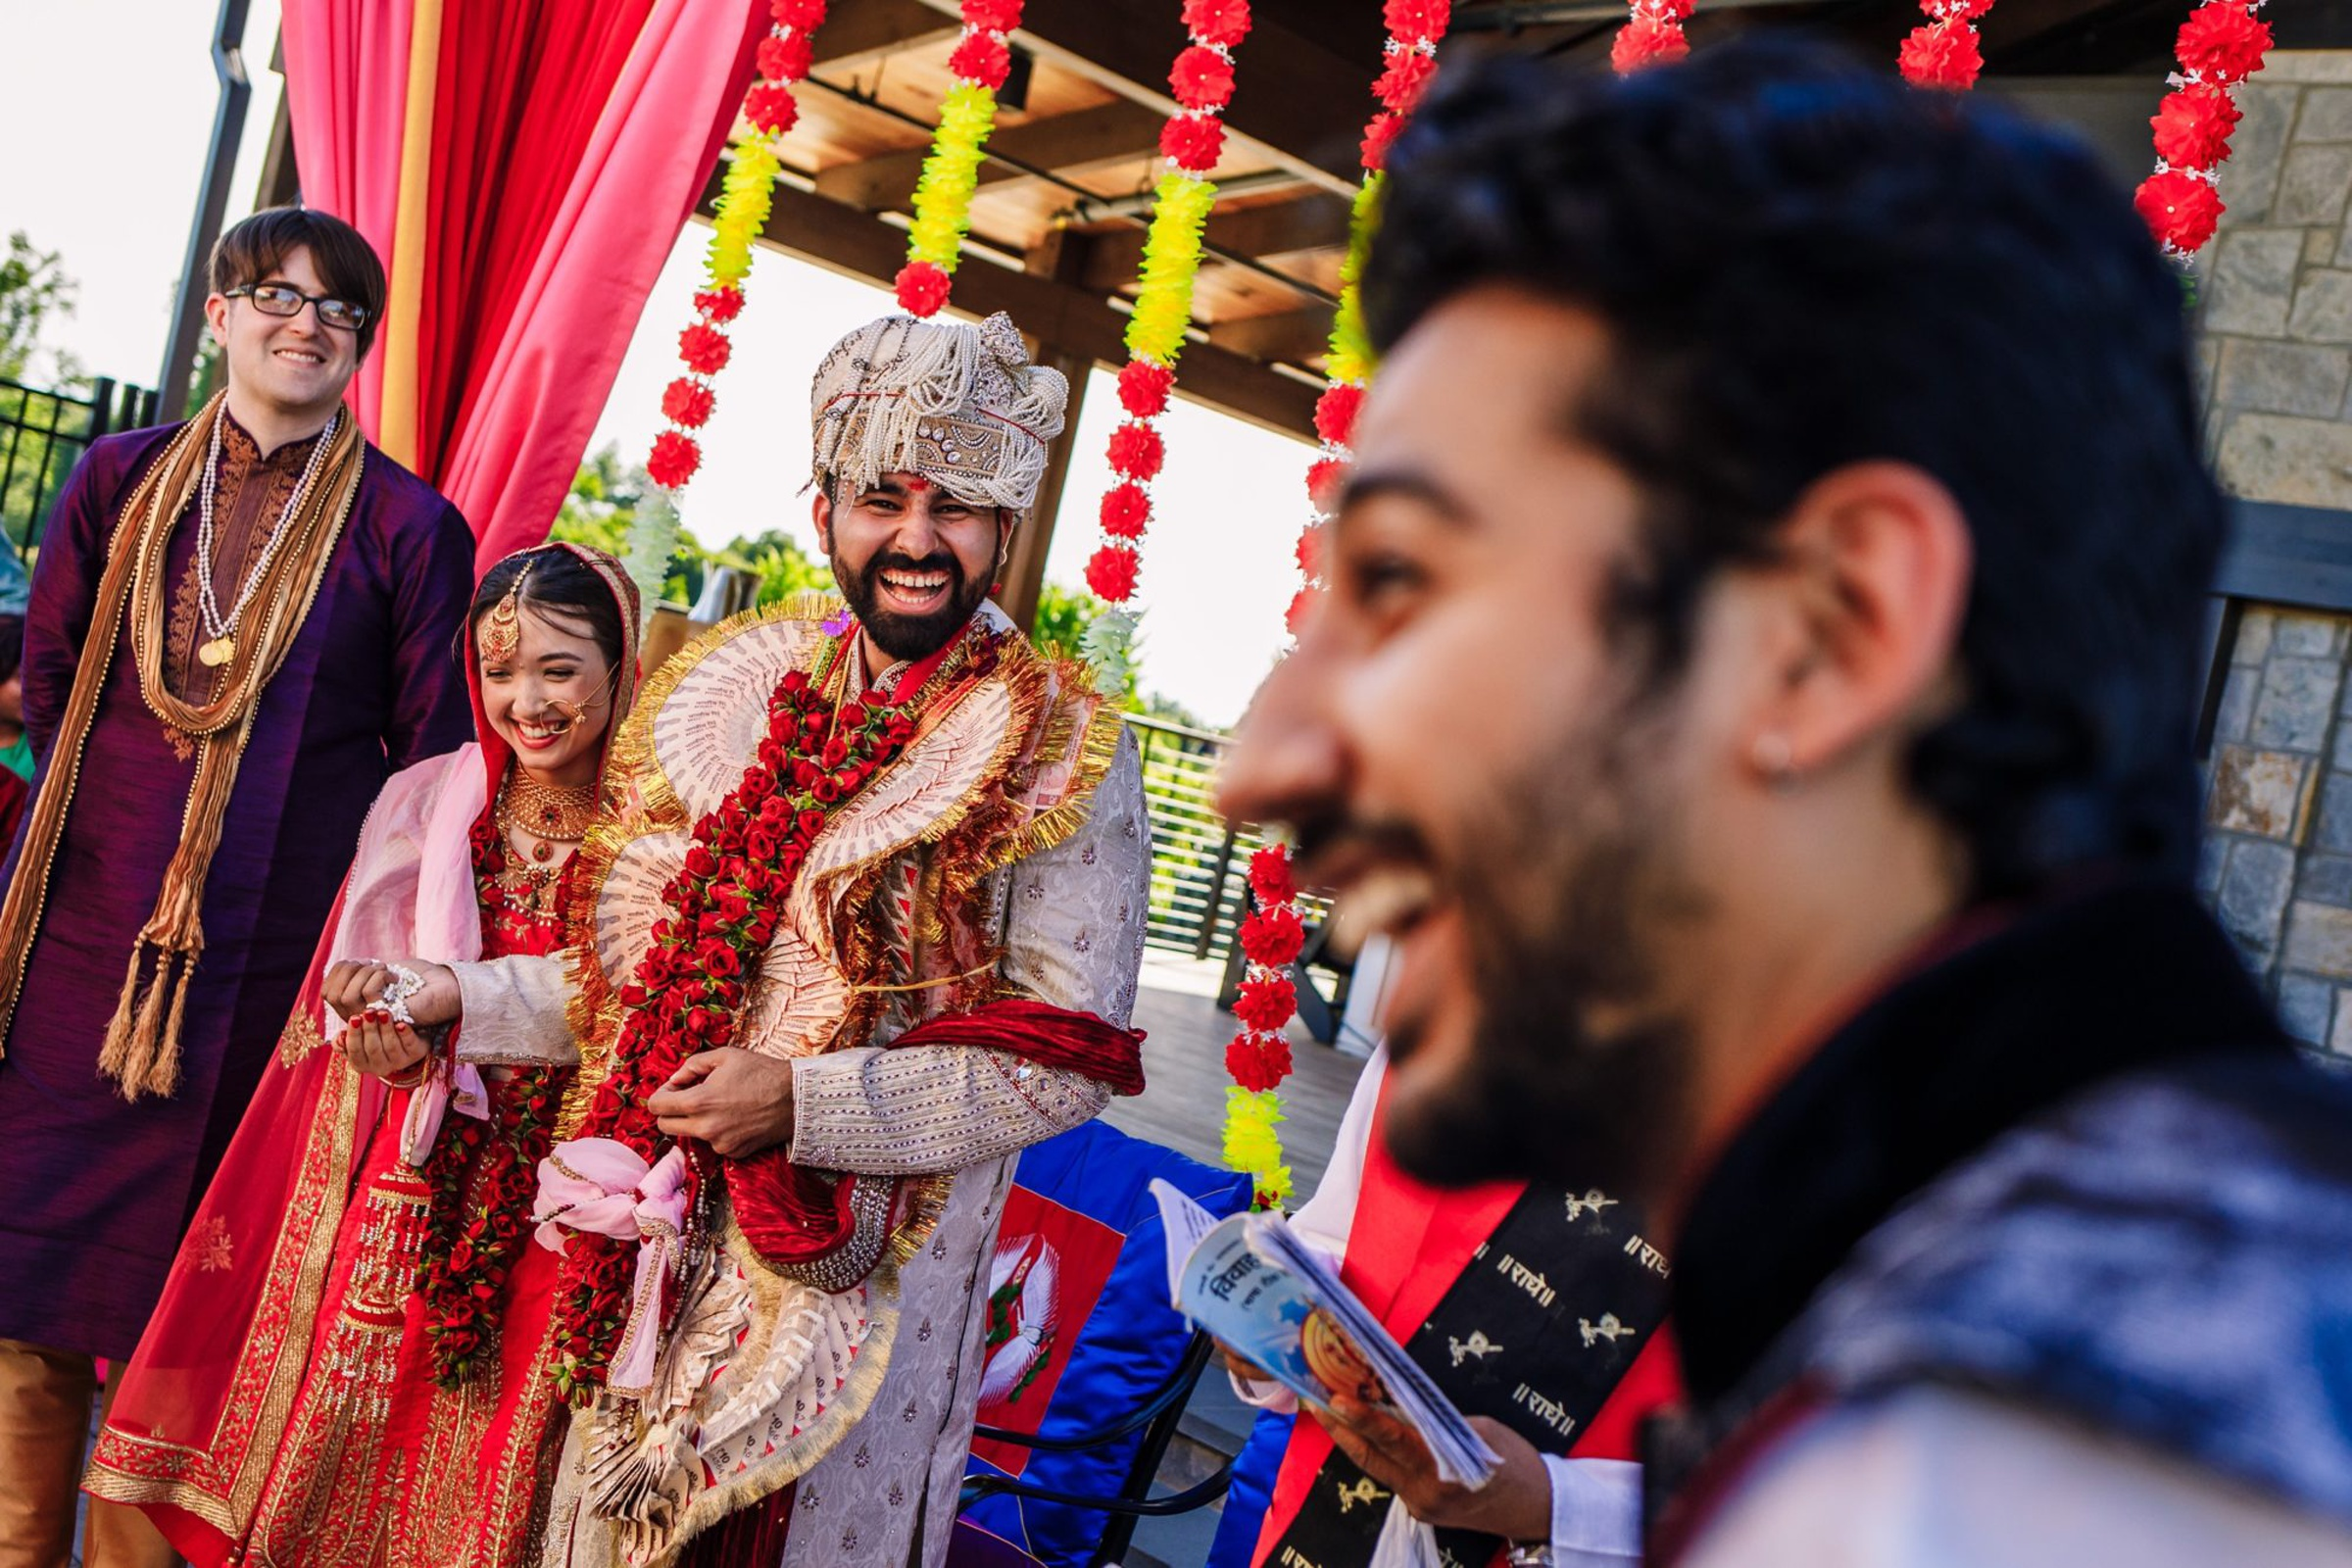 Indian bride and groom laughing - photo by Photography by Brea